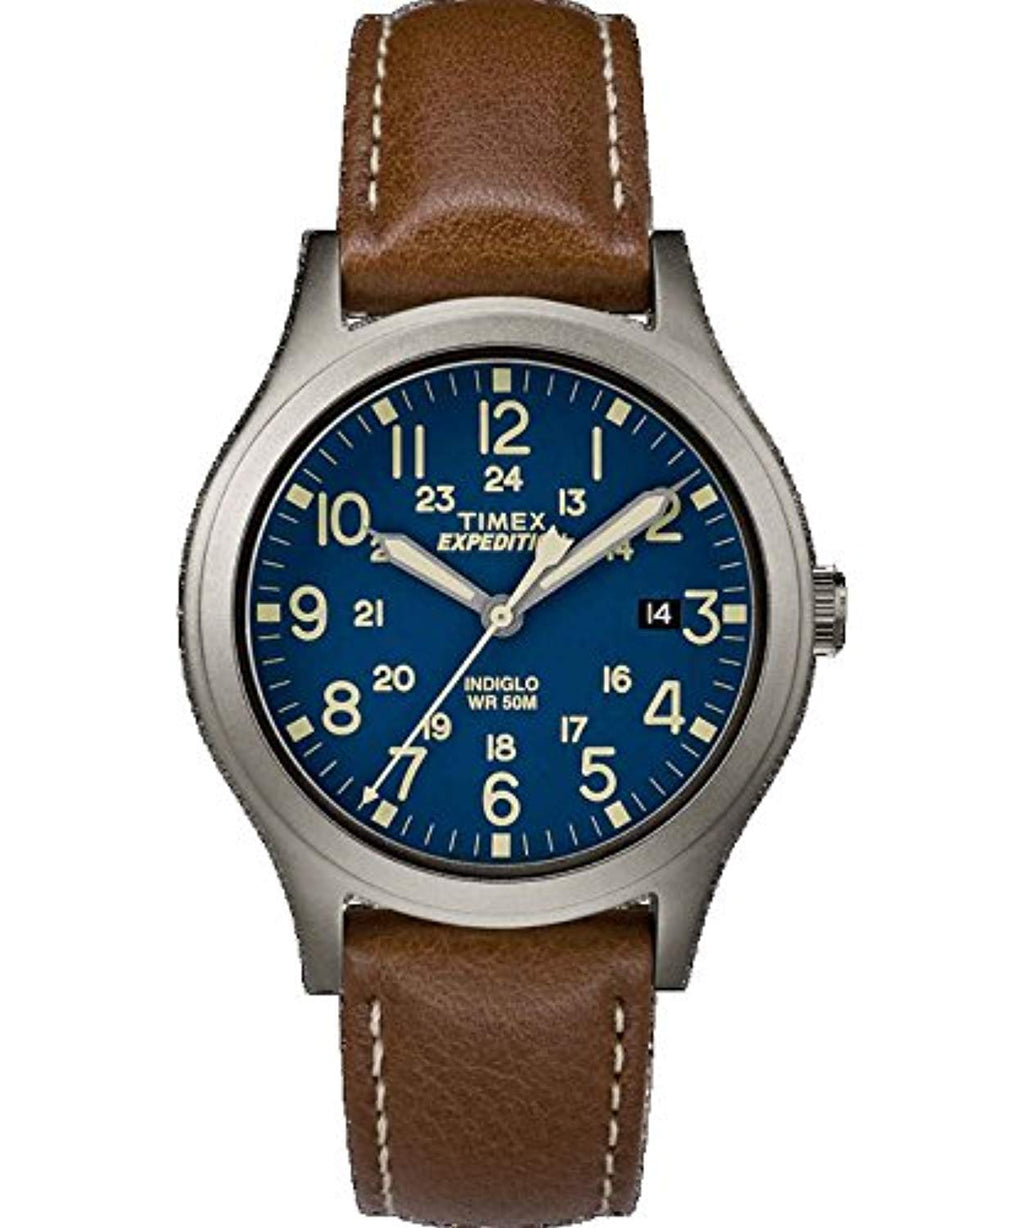 Timex Expedition Mid-Size Leather Watch - Blue Dial